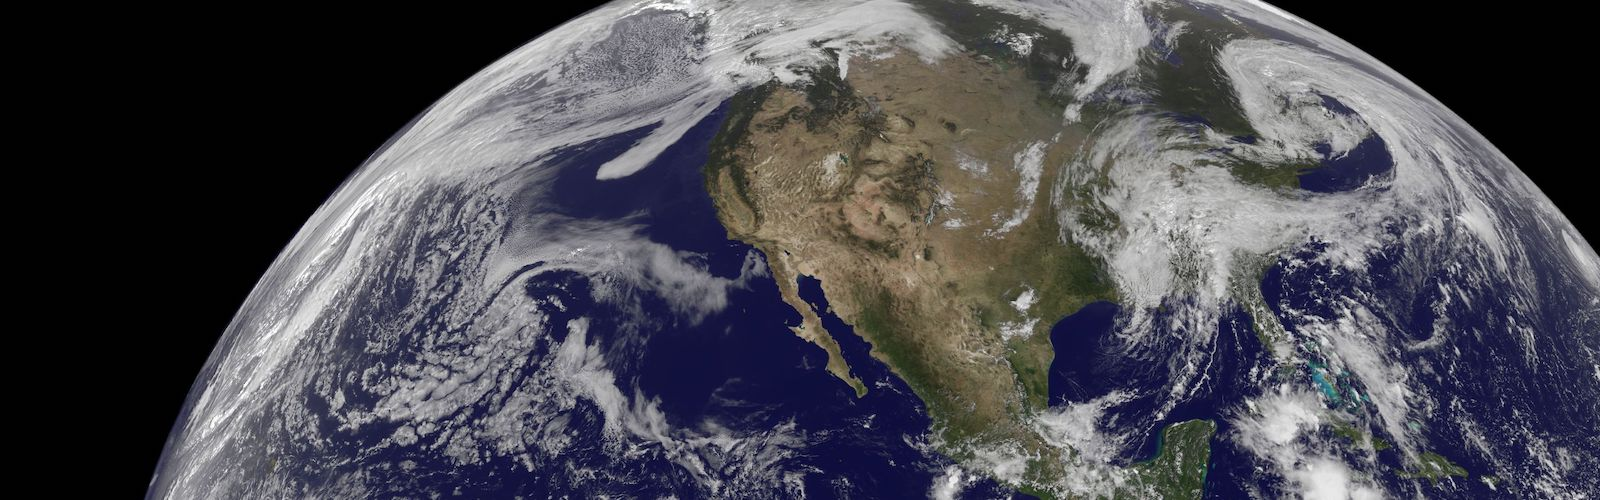 slide 1 - View of North America from space